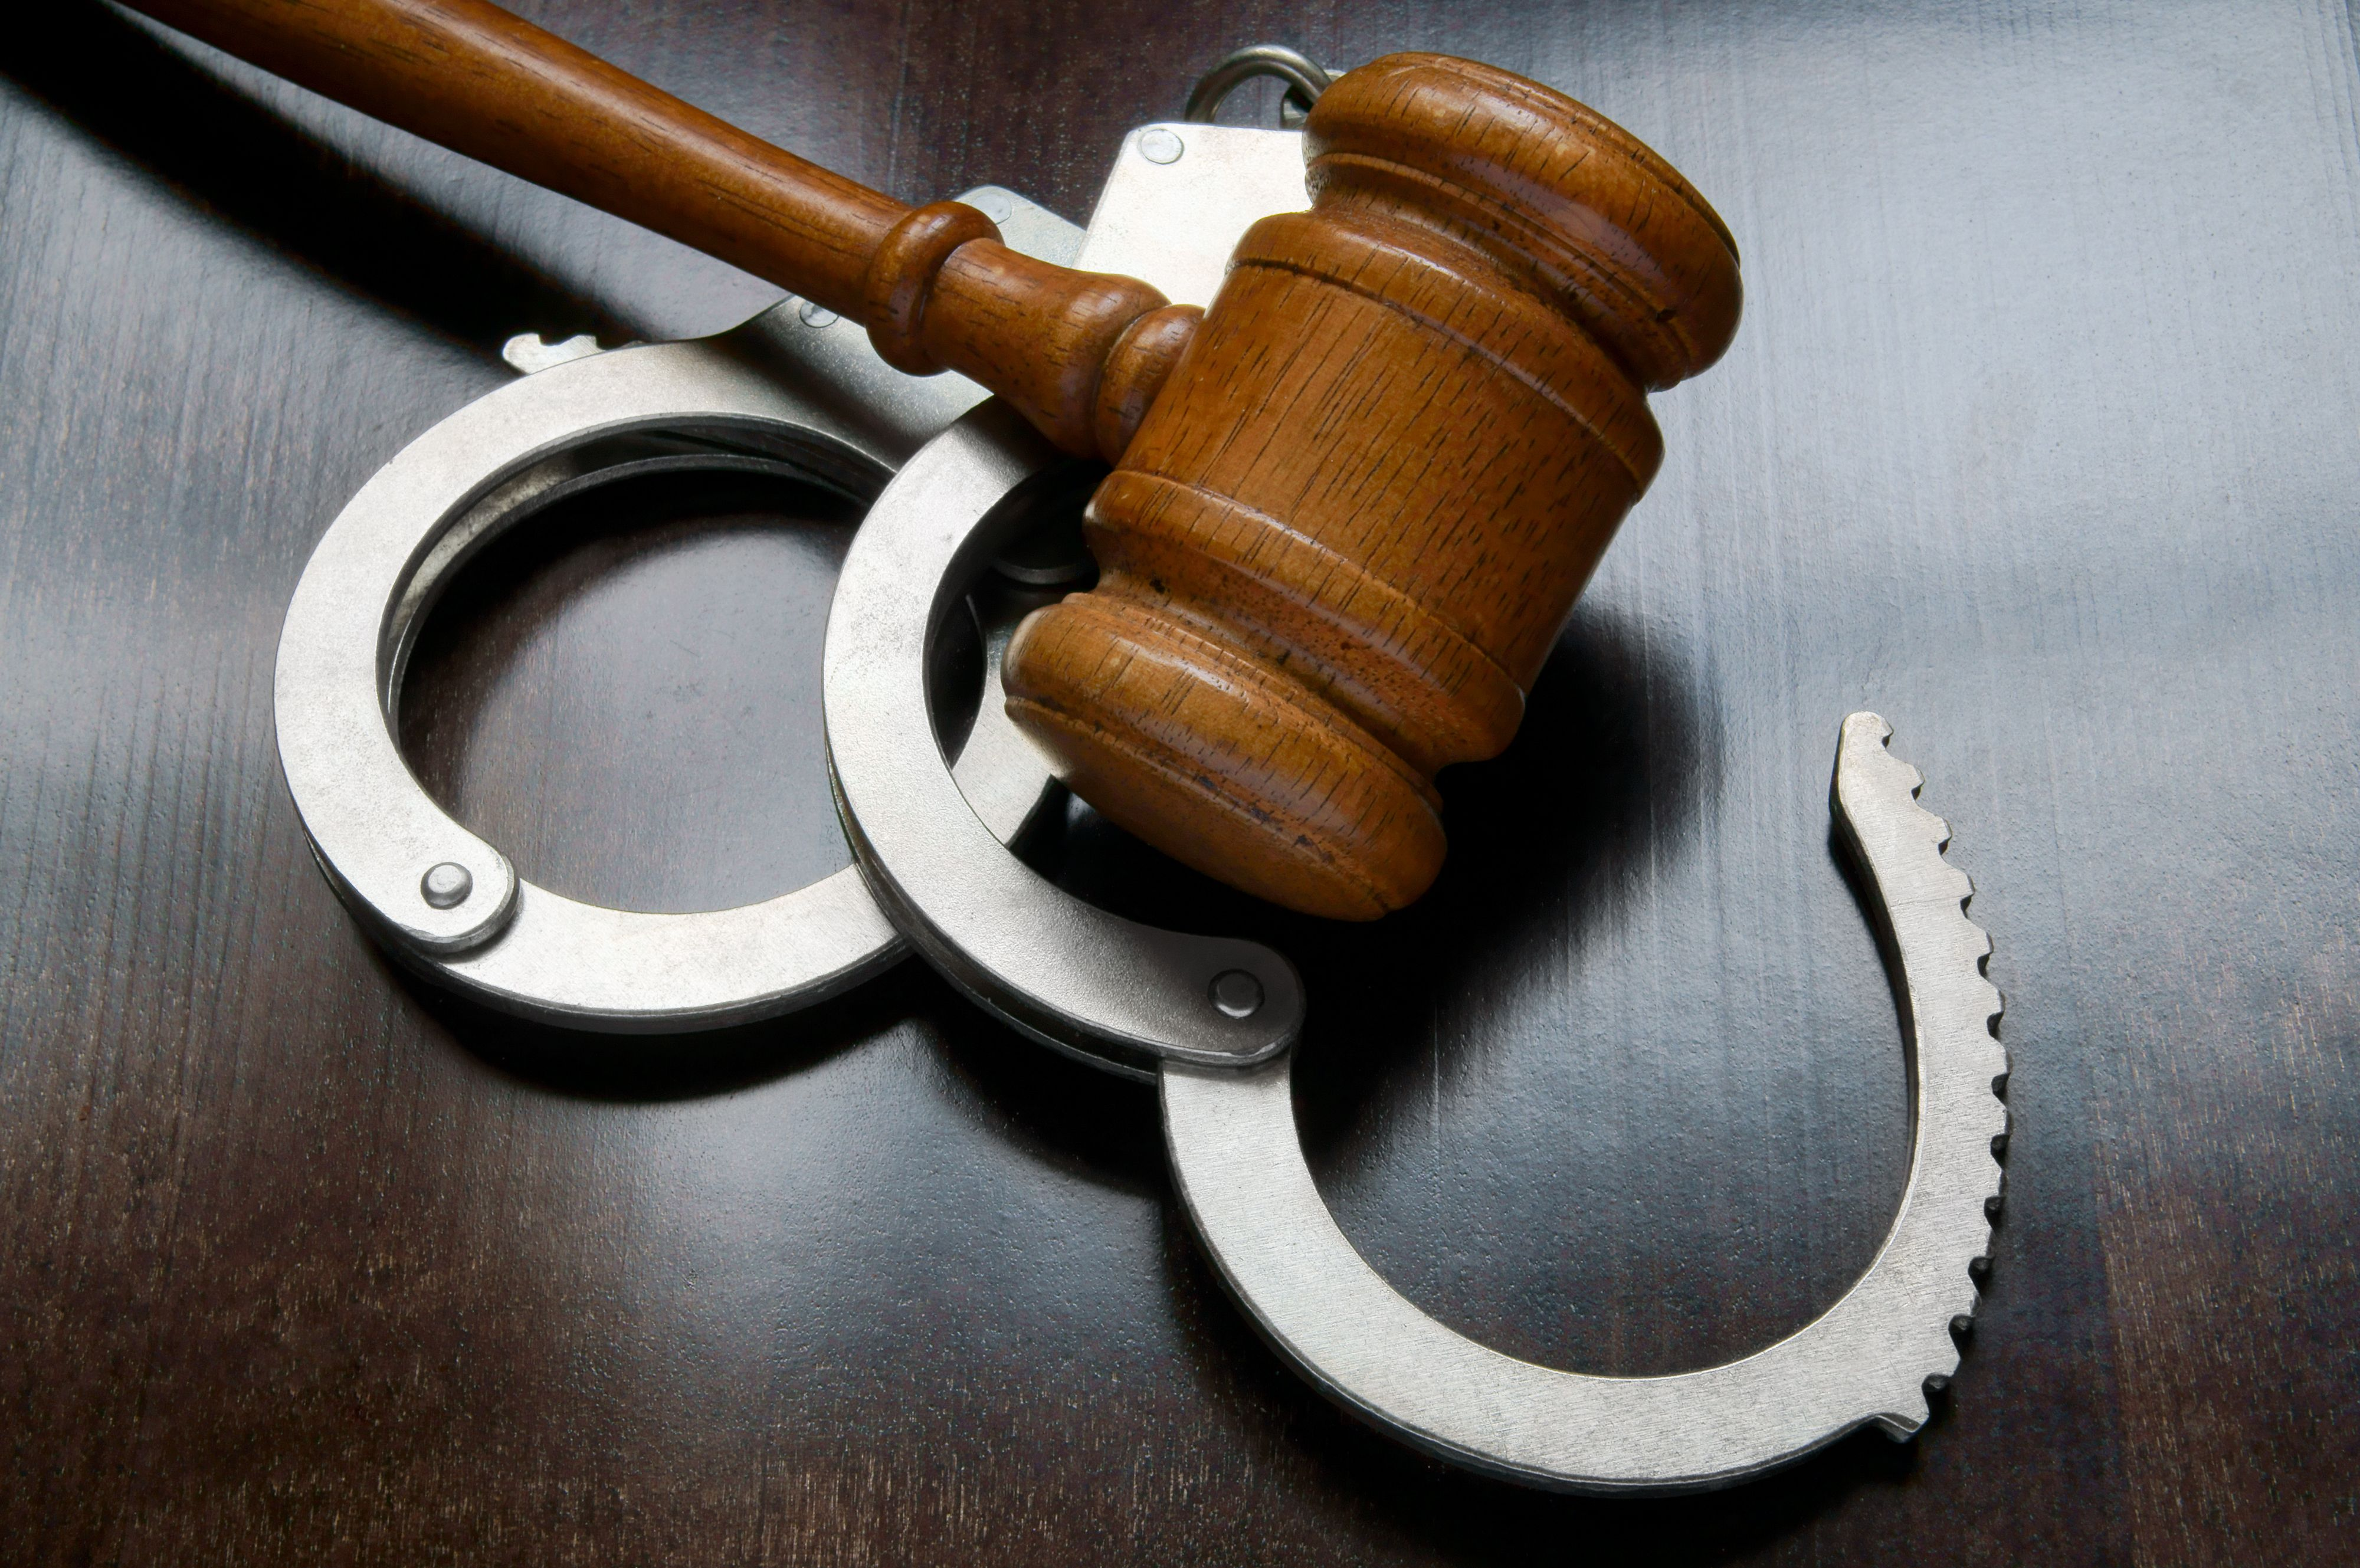 Gavel and handcuffs - misdemeanors in California